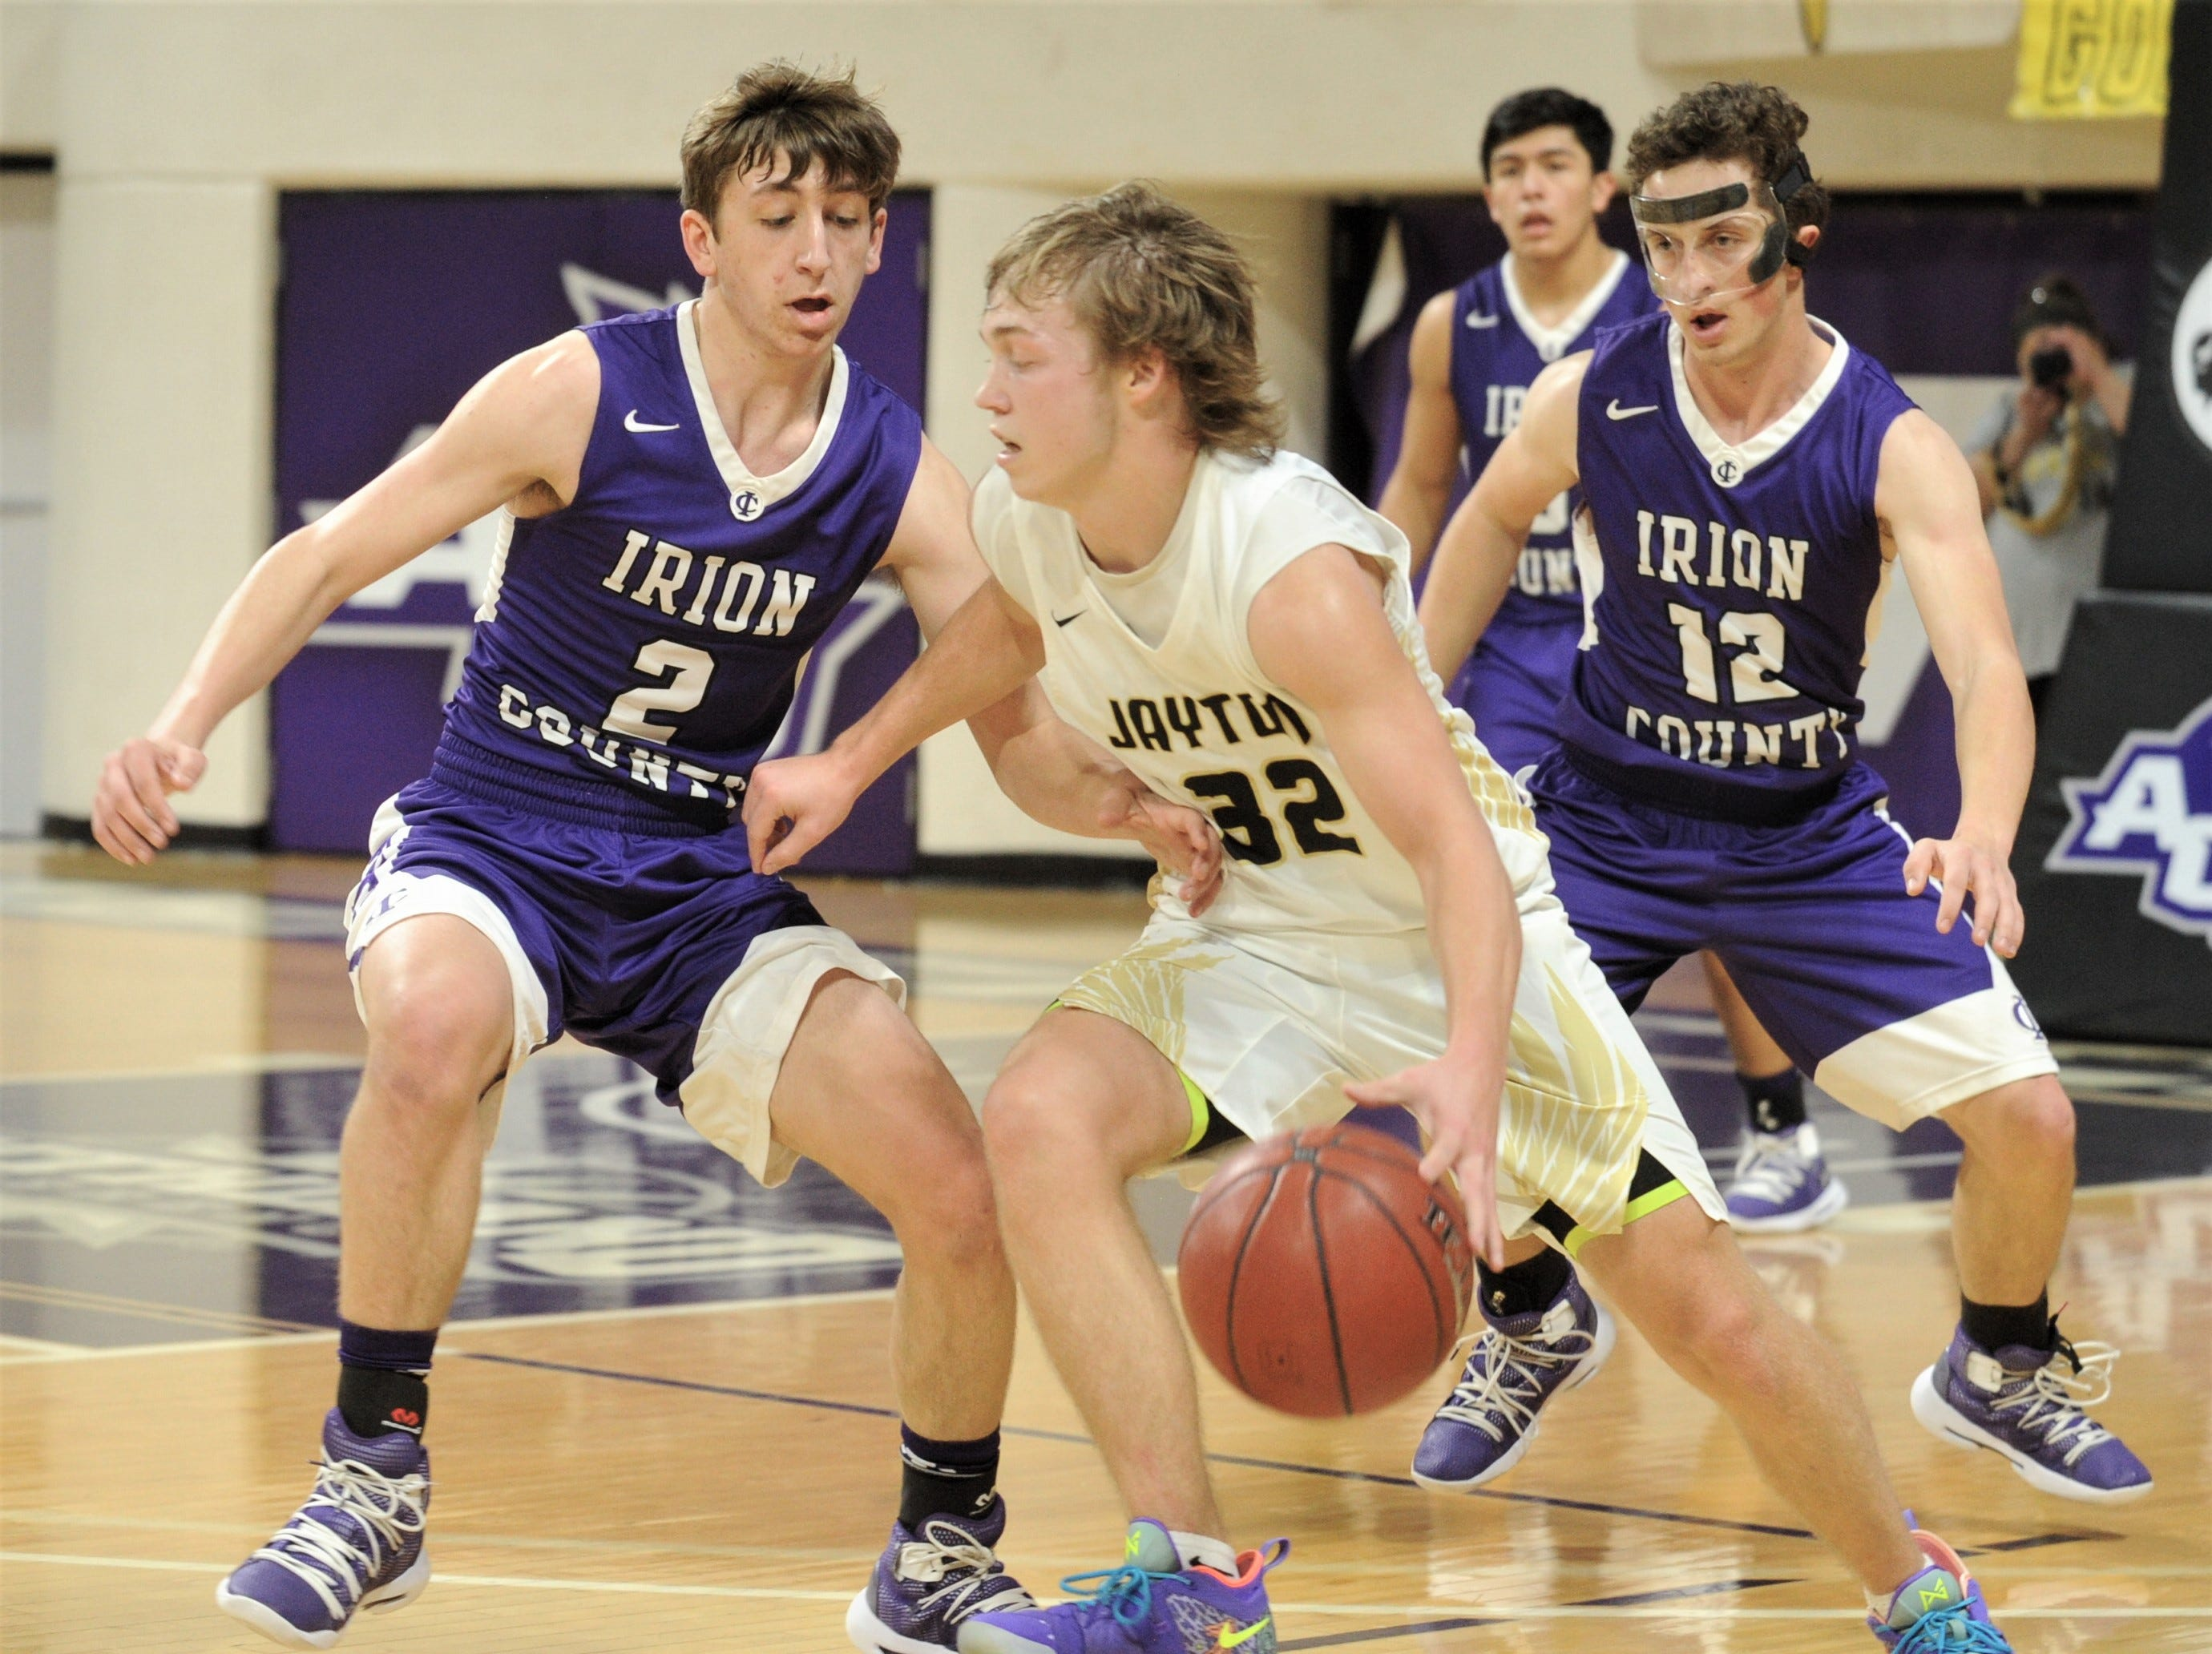 Jayton's Tye Scogin, centerl gets pressure from Irion County's Kaden Councilman (2) and Sawyer Paxton (12). The Jaybirds beat Irion County 47-32 in the Region II-1A championship game Saturday, March 2, 2019, at Abilene Christian's Moody Coliseum.